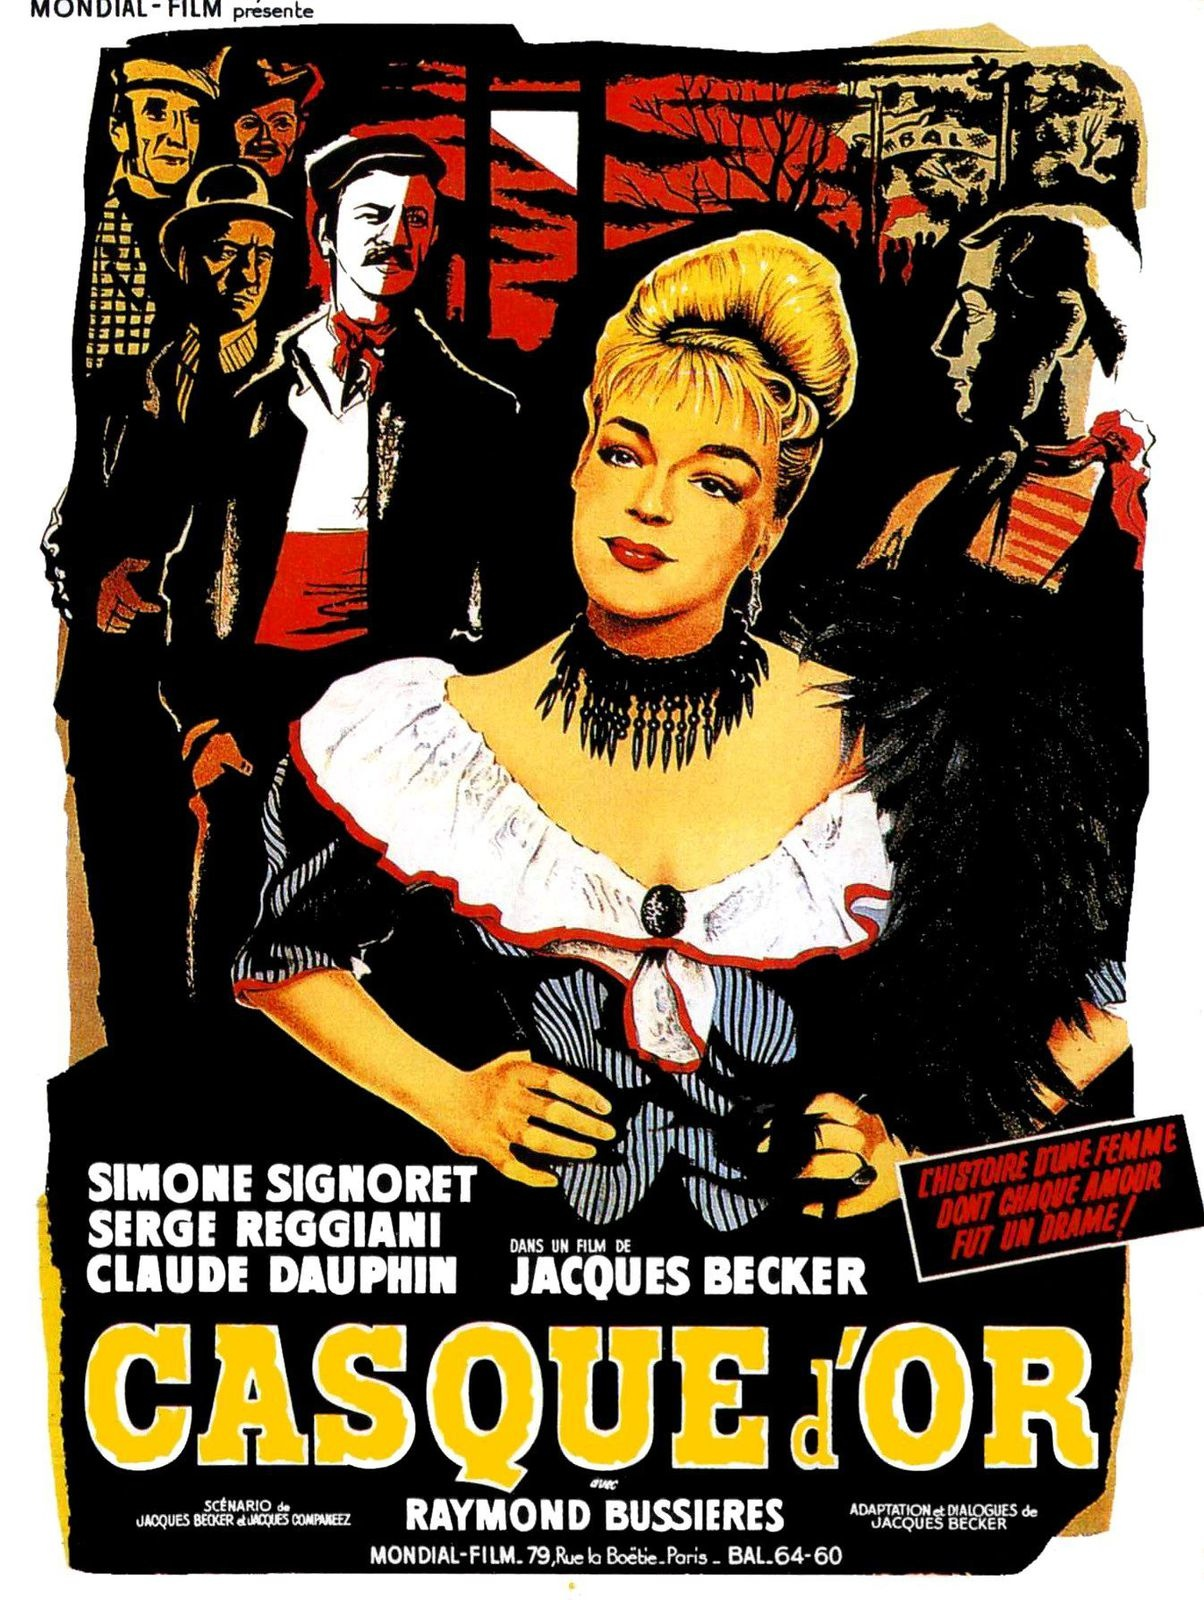 Casque d'or film poster